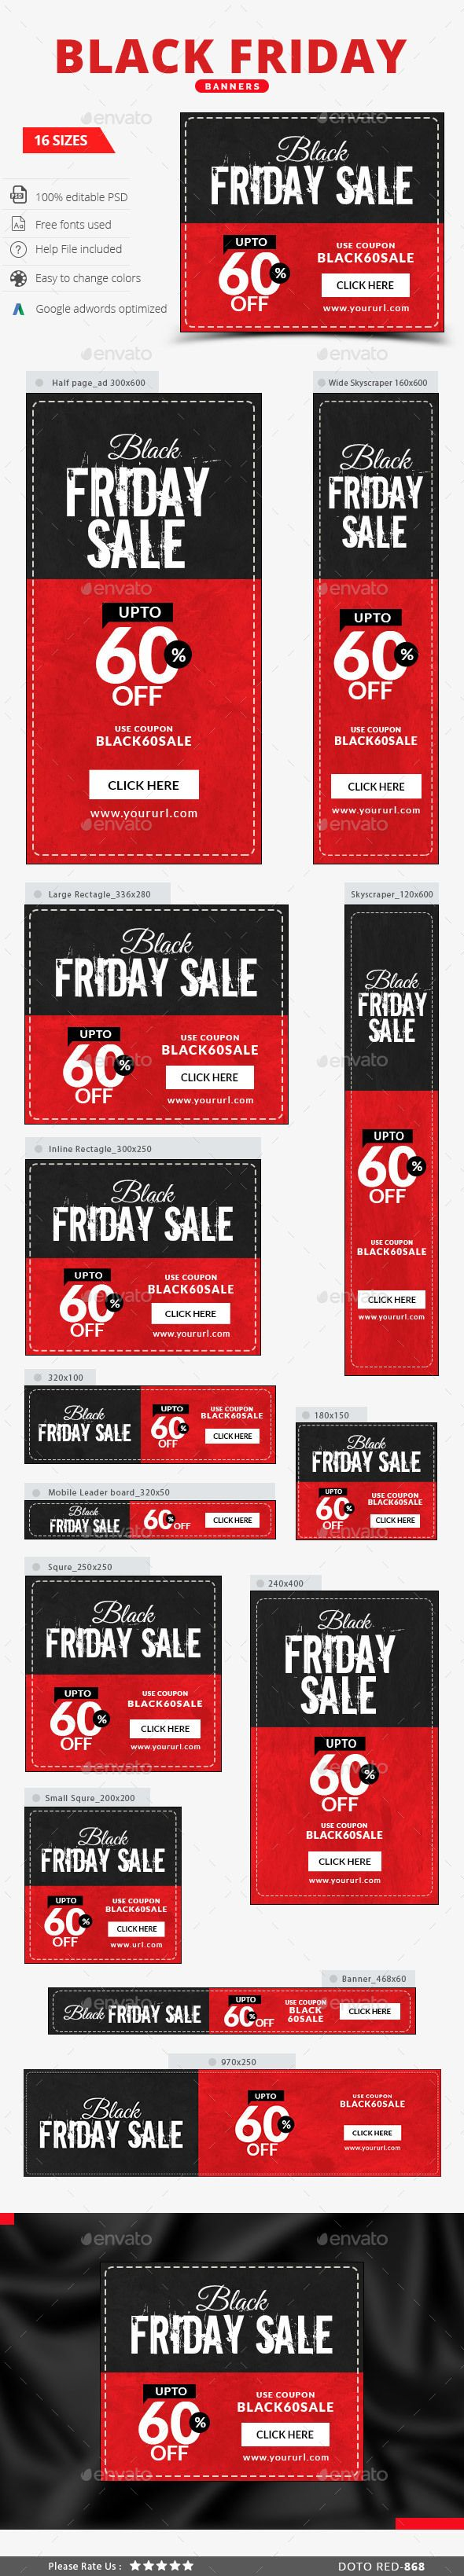 Black Friday Web Banners Template PSD #design #ads Download: http://graphicriver.net/item/black-friday-banners/13737619?ref=ksioks